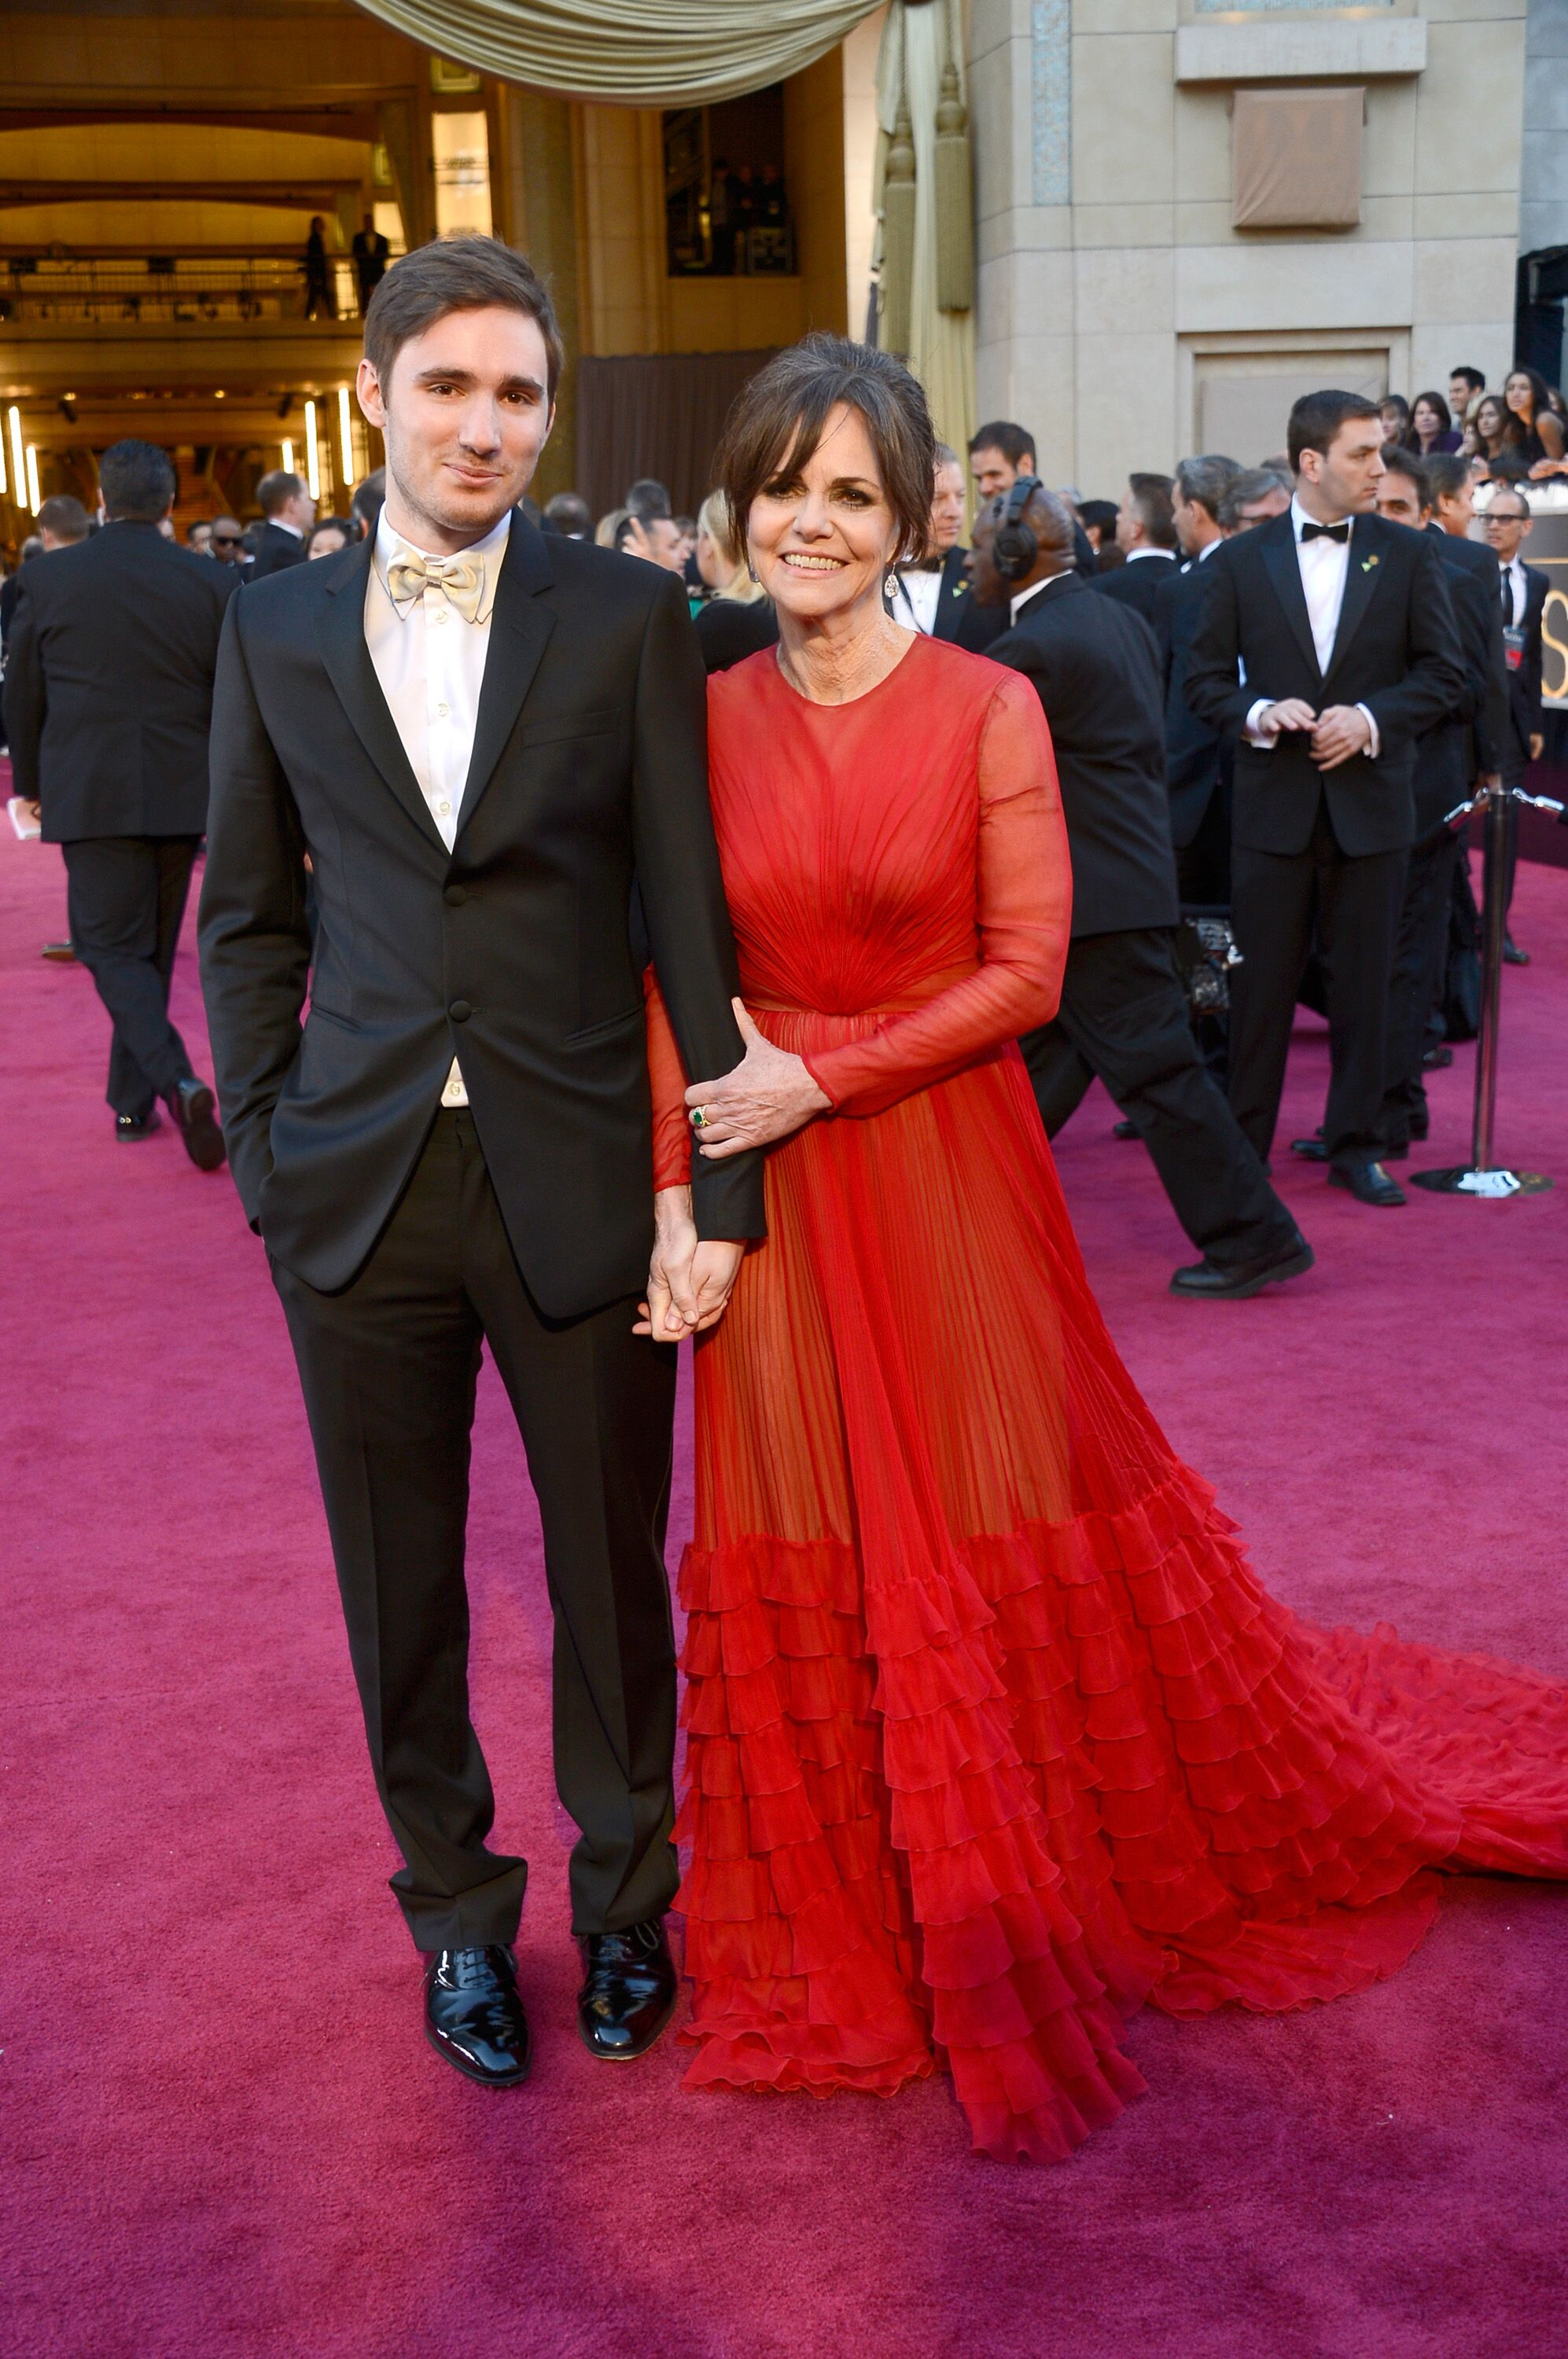 Sally Field and son Sam Greisman arrives at the Oscars at Hollywood & Highland Center.   Source: Getty Images